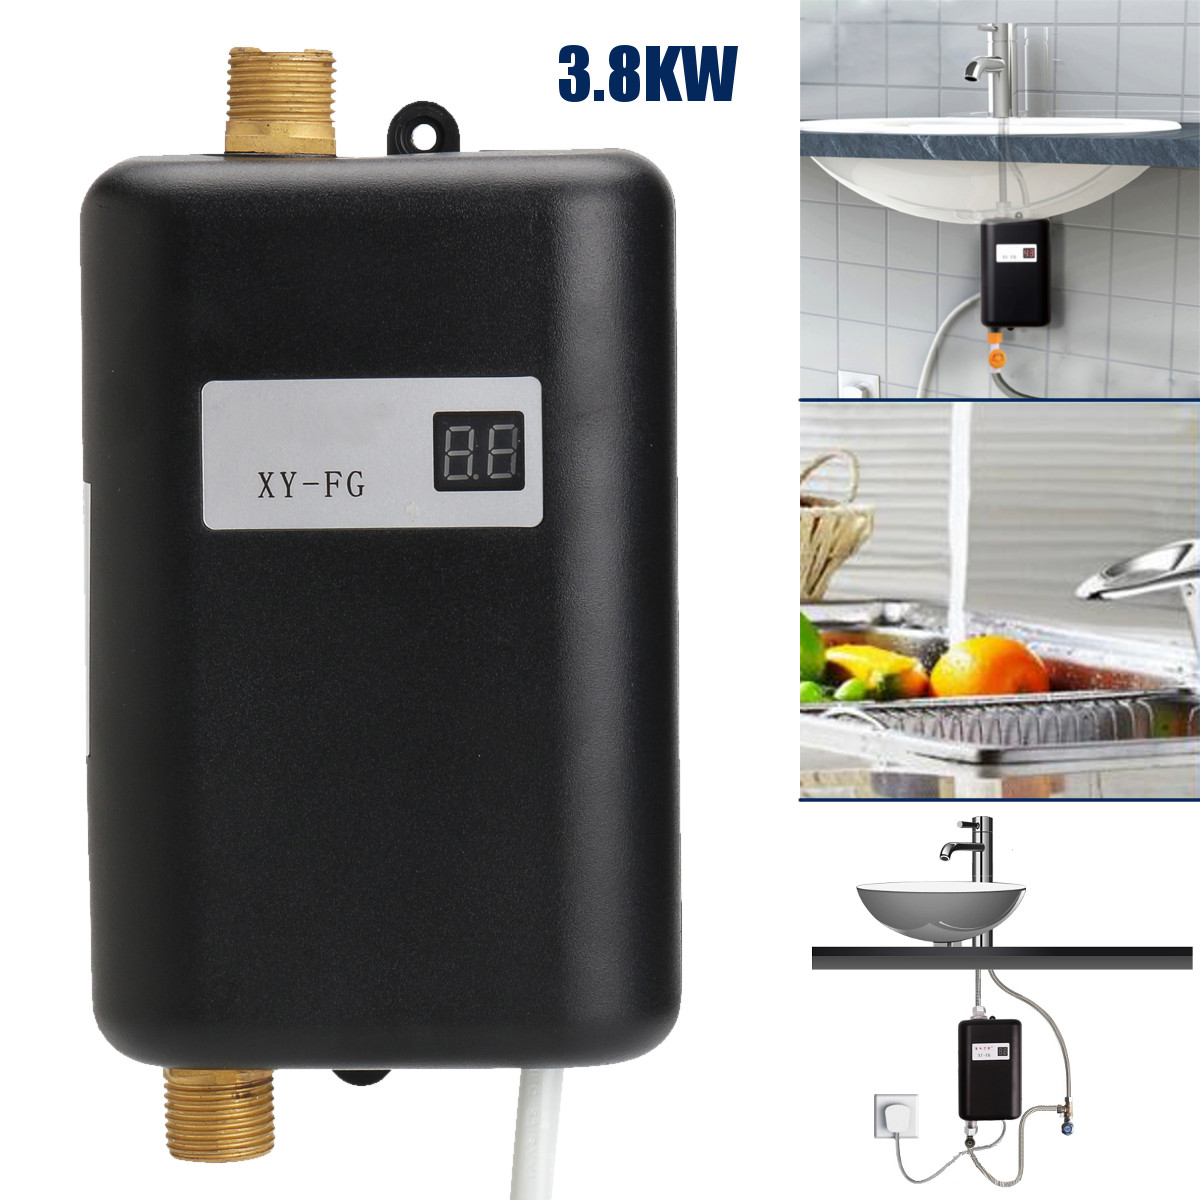 3800W/3400W Electric Water Heater Instant Tankless Water Heater 220V 3.8KW Temperature display Heating Shower Universal image